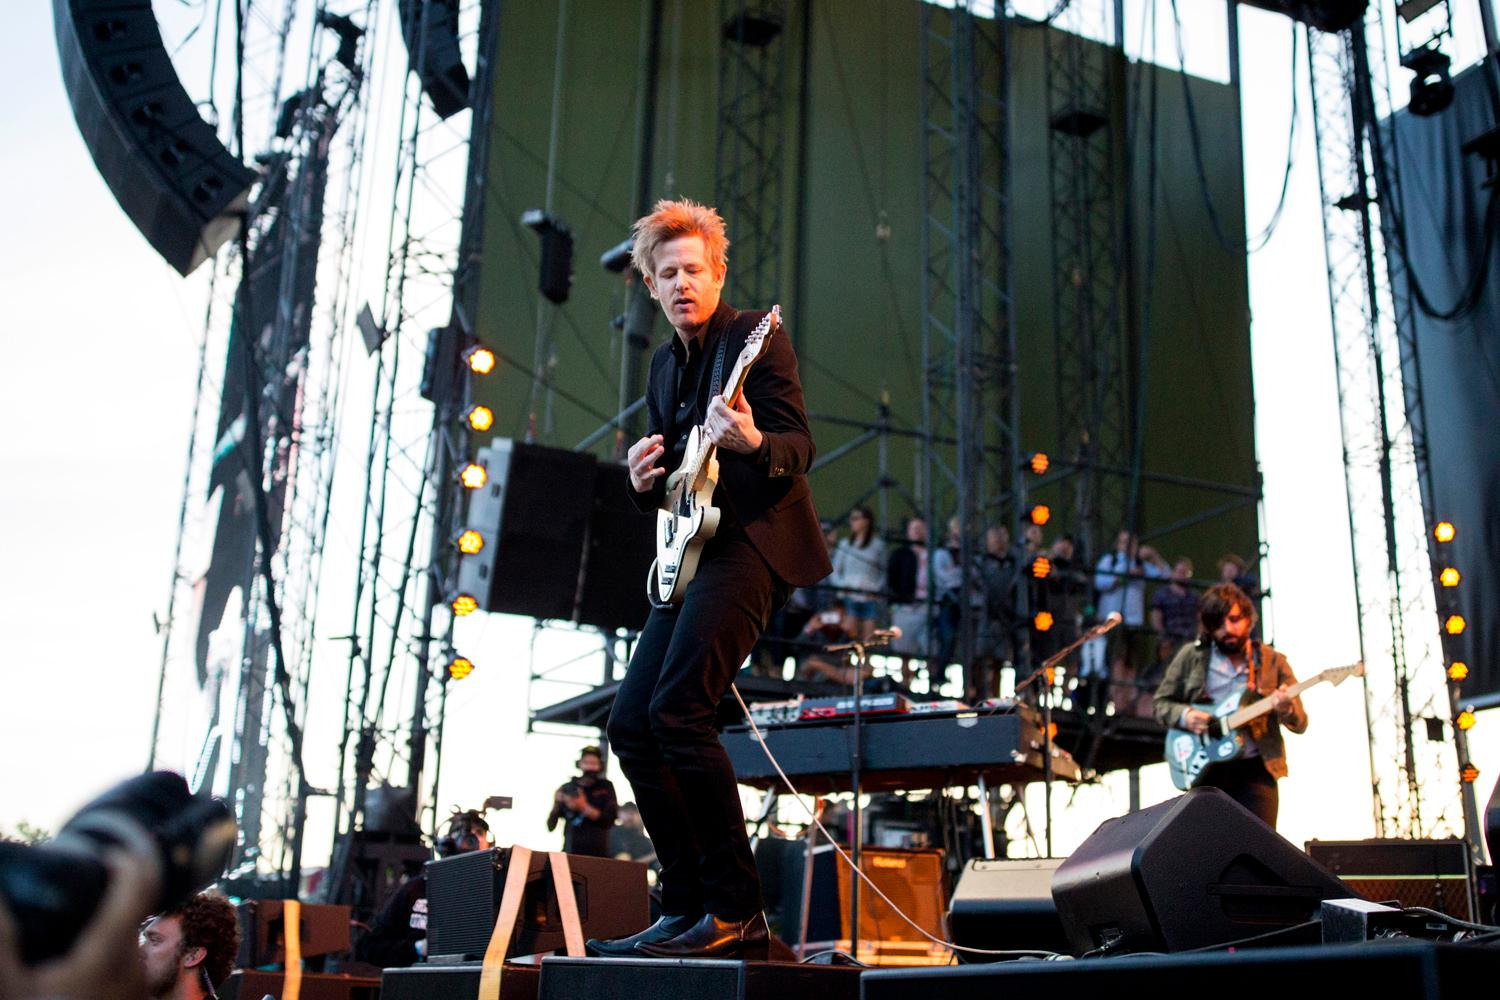 SPOON performs at the second day of the annual Sasquatch! Music Festival. The three-day festival runs throughout the Memorial Day Weekend, from May 25-27, 2018. (Sy Bean / Seattle Refined)